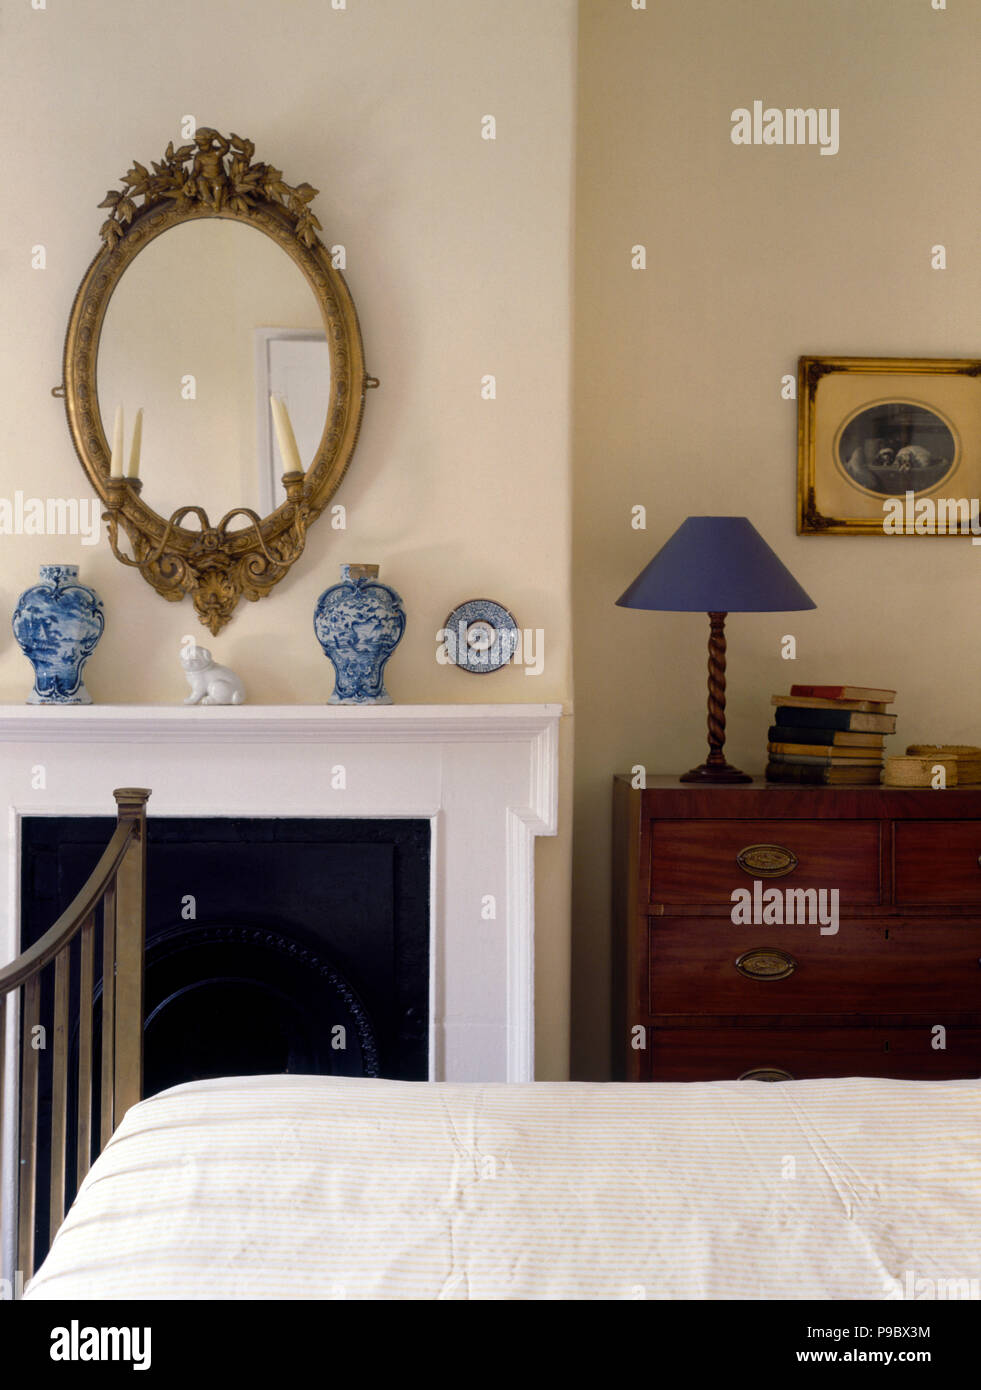 Oval Antique Mirror Above Fireplace With Blue Vases In An Economy Style  Bedroom